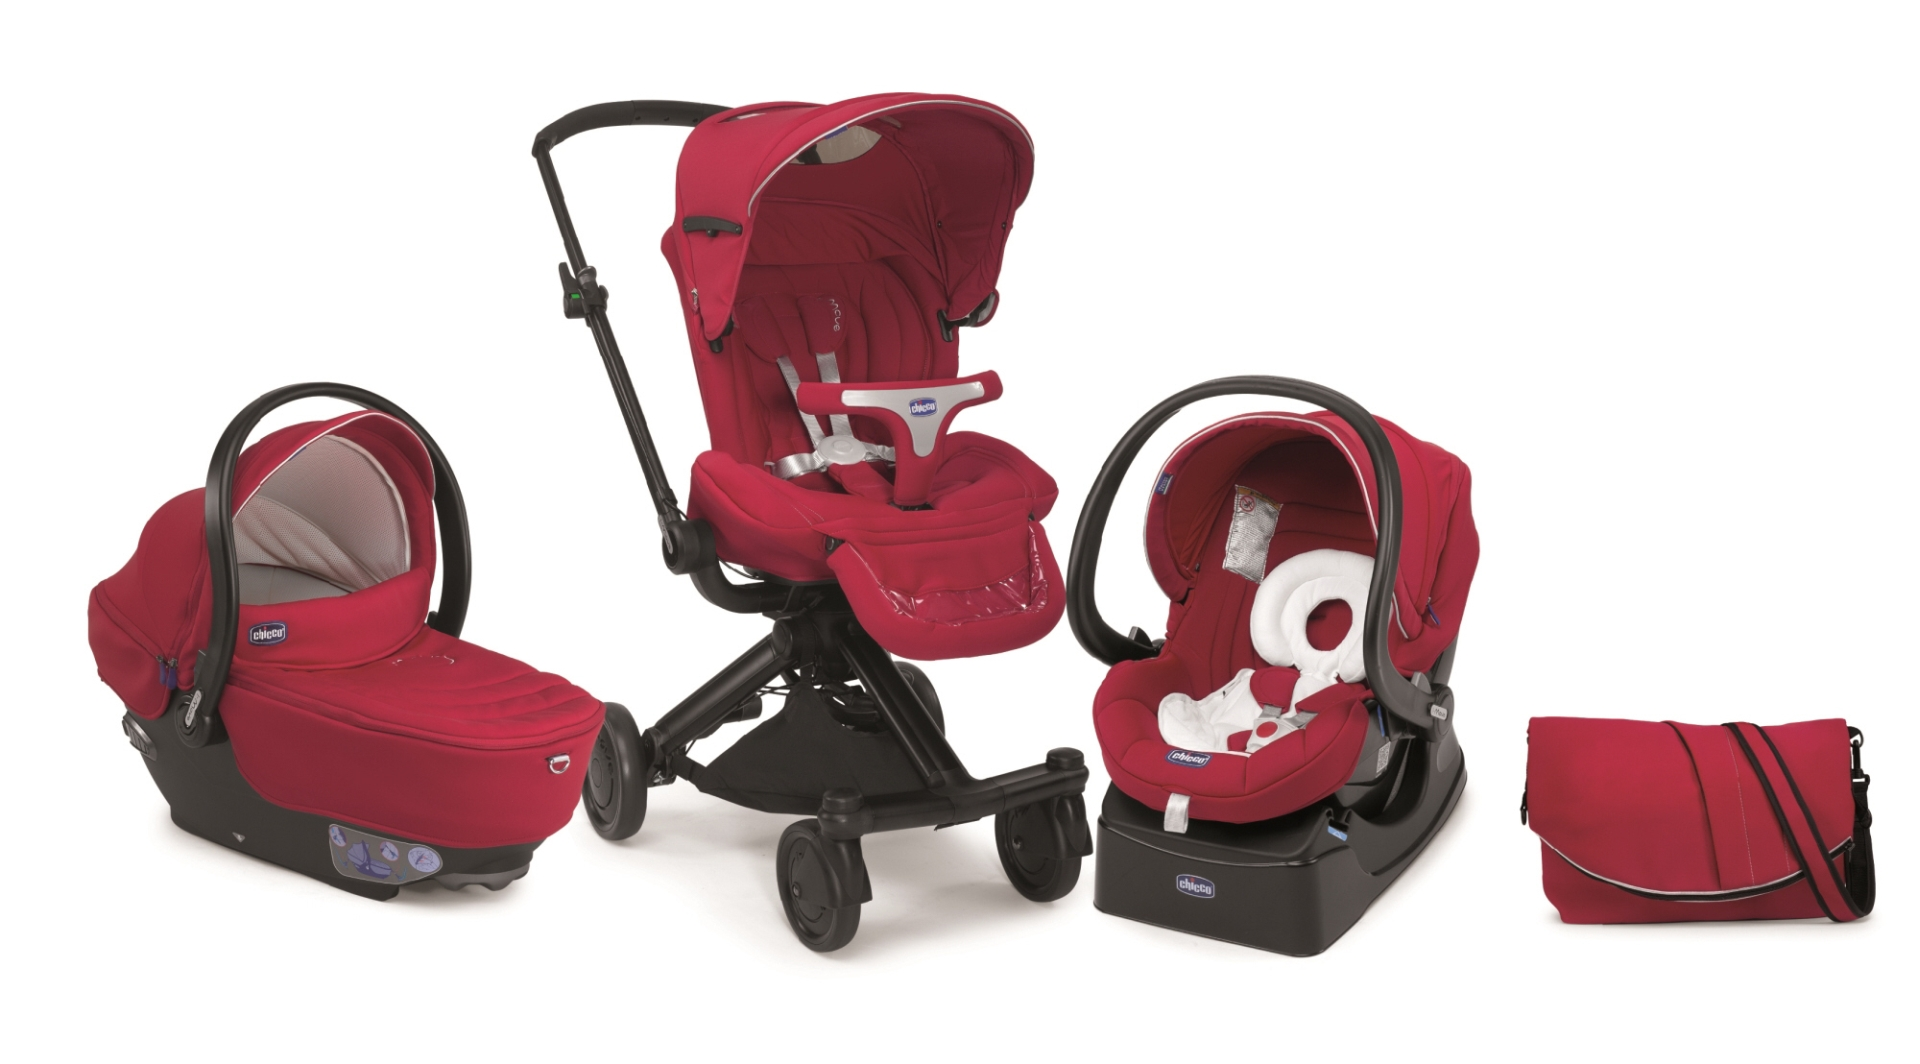 Why choose an infant seat and not a convertible (all-in-one) seat?